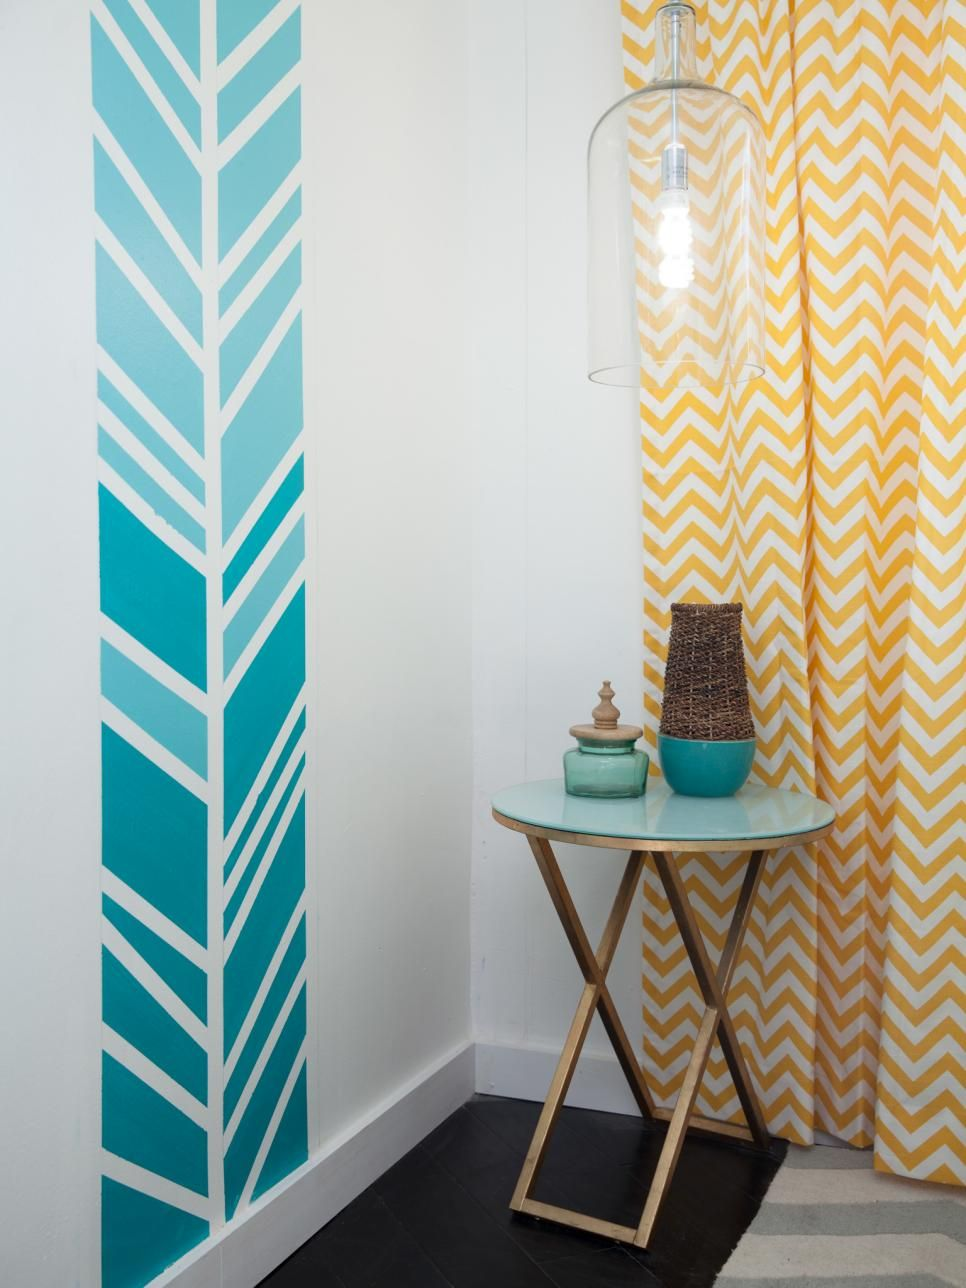 As seen on HGTV's Flipping the Block, husband and wife team John and Whitney Spinks created a midcentury modern retreat in their master bedroom in Glendale, Calif. They chose a bright white paint and then stenciled a herringbone pattern in graduated shades of aquamarine on two walls. Yellow chevron curtains provide contrast and additional pattern.